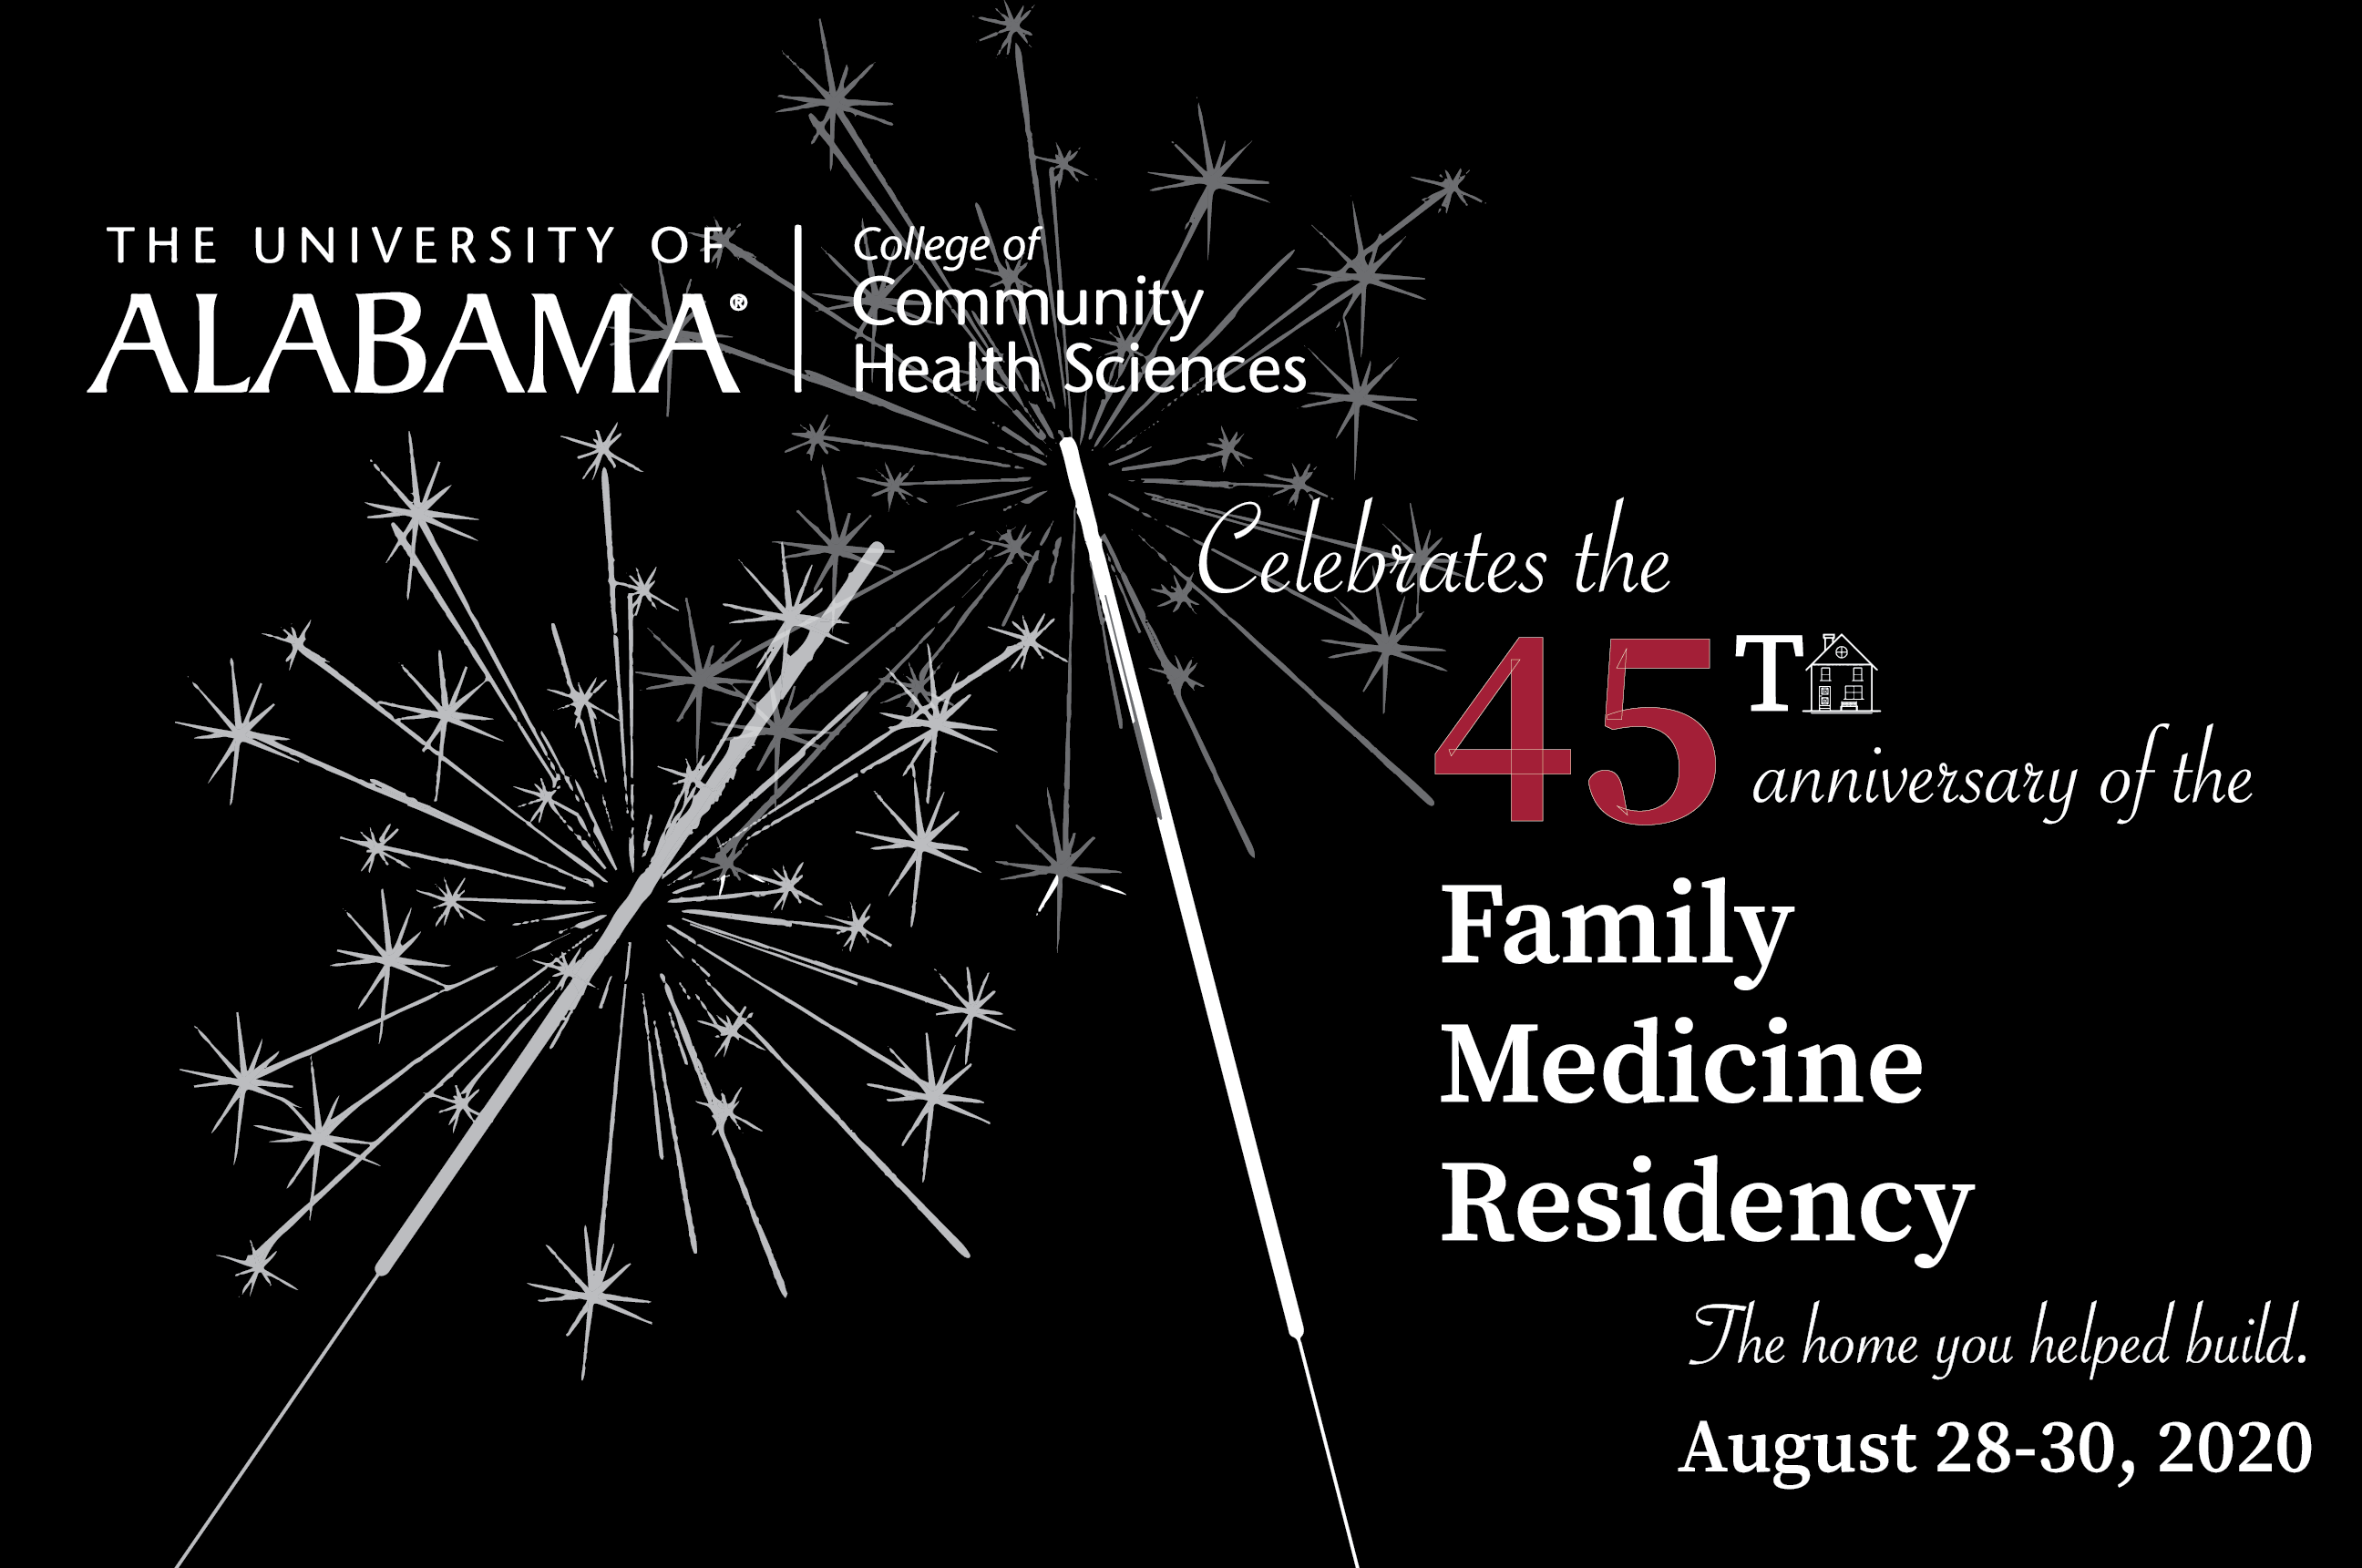 Celebrate the 45th anniversary of the Family Medicine Residency, The home you helped build. August 28-30, 2020